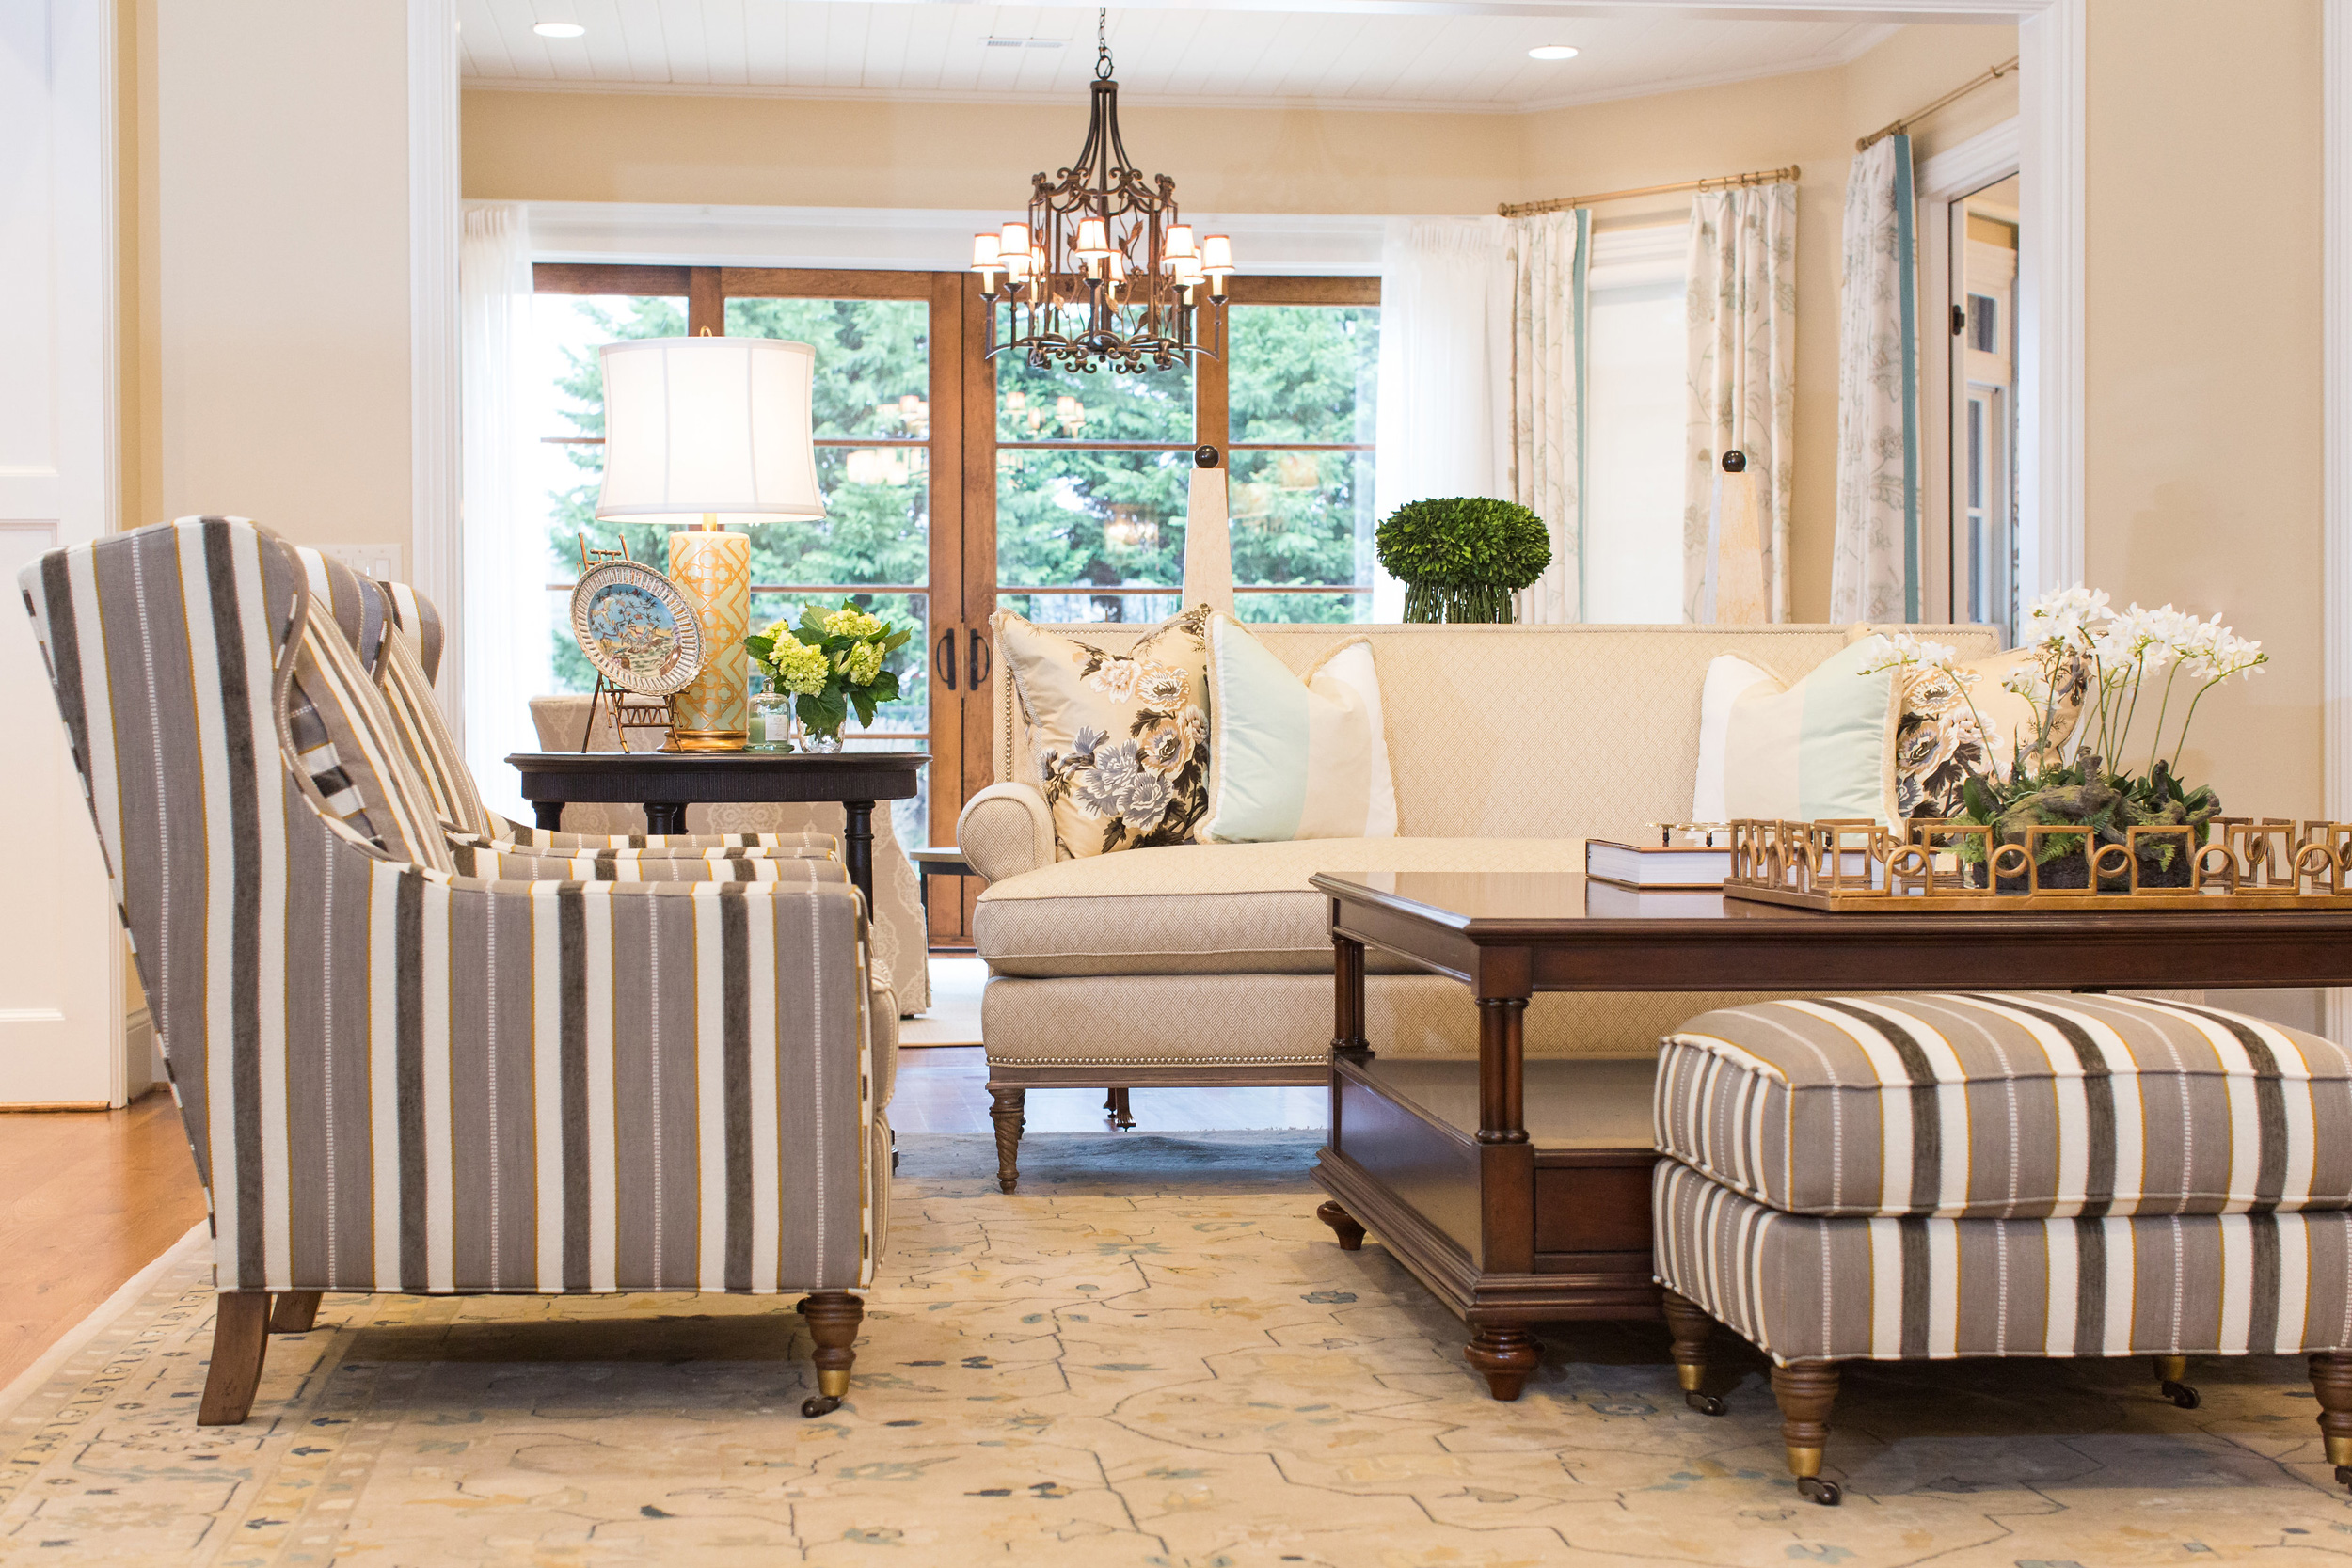 Affordable Eric Ross Interiors Interior Design Nashville Tn Best Interior  Designer With How Much Do Interior Designers Make.